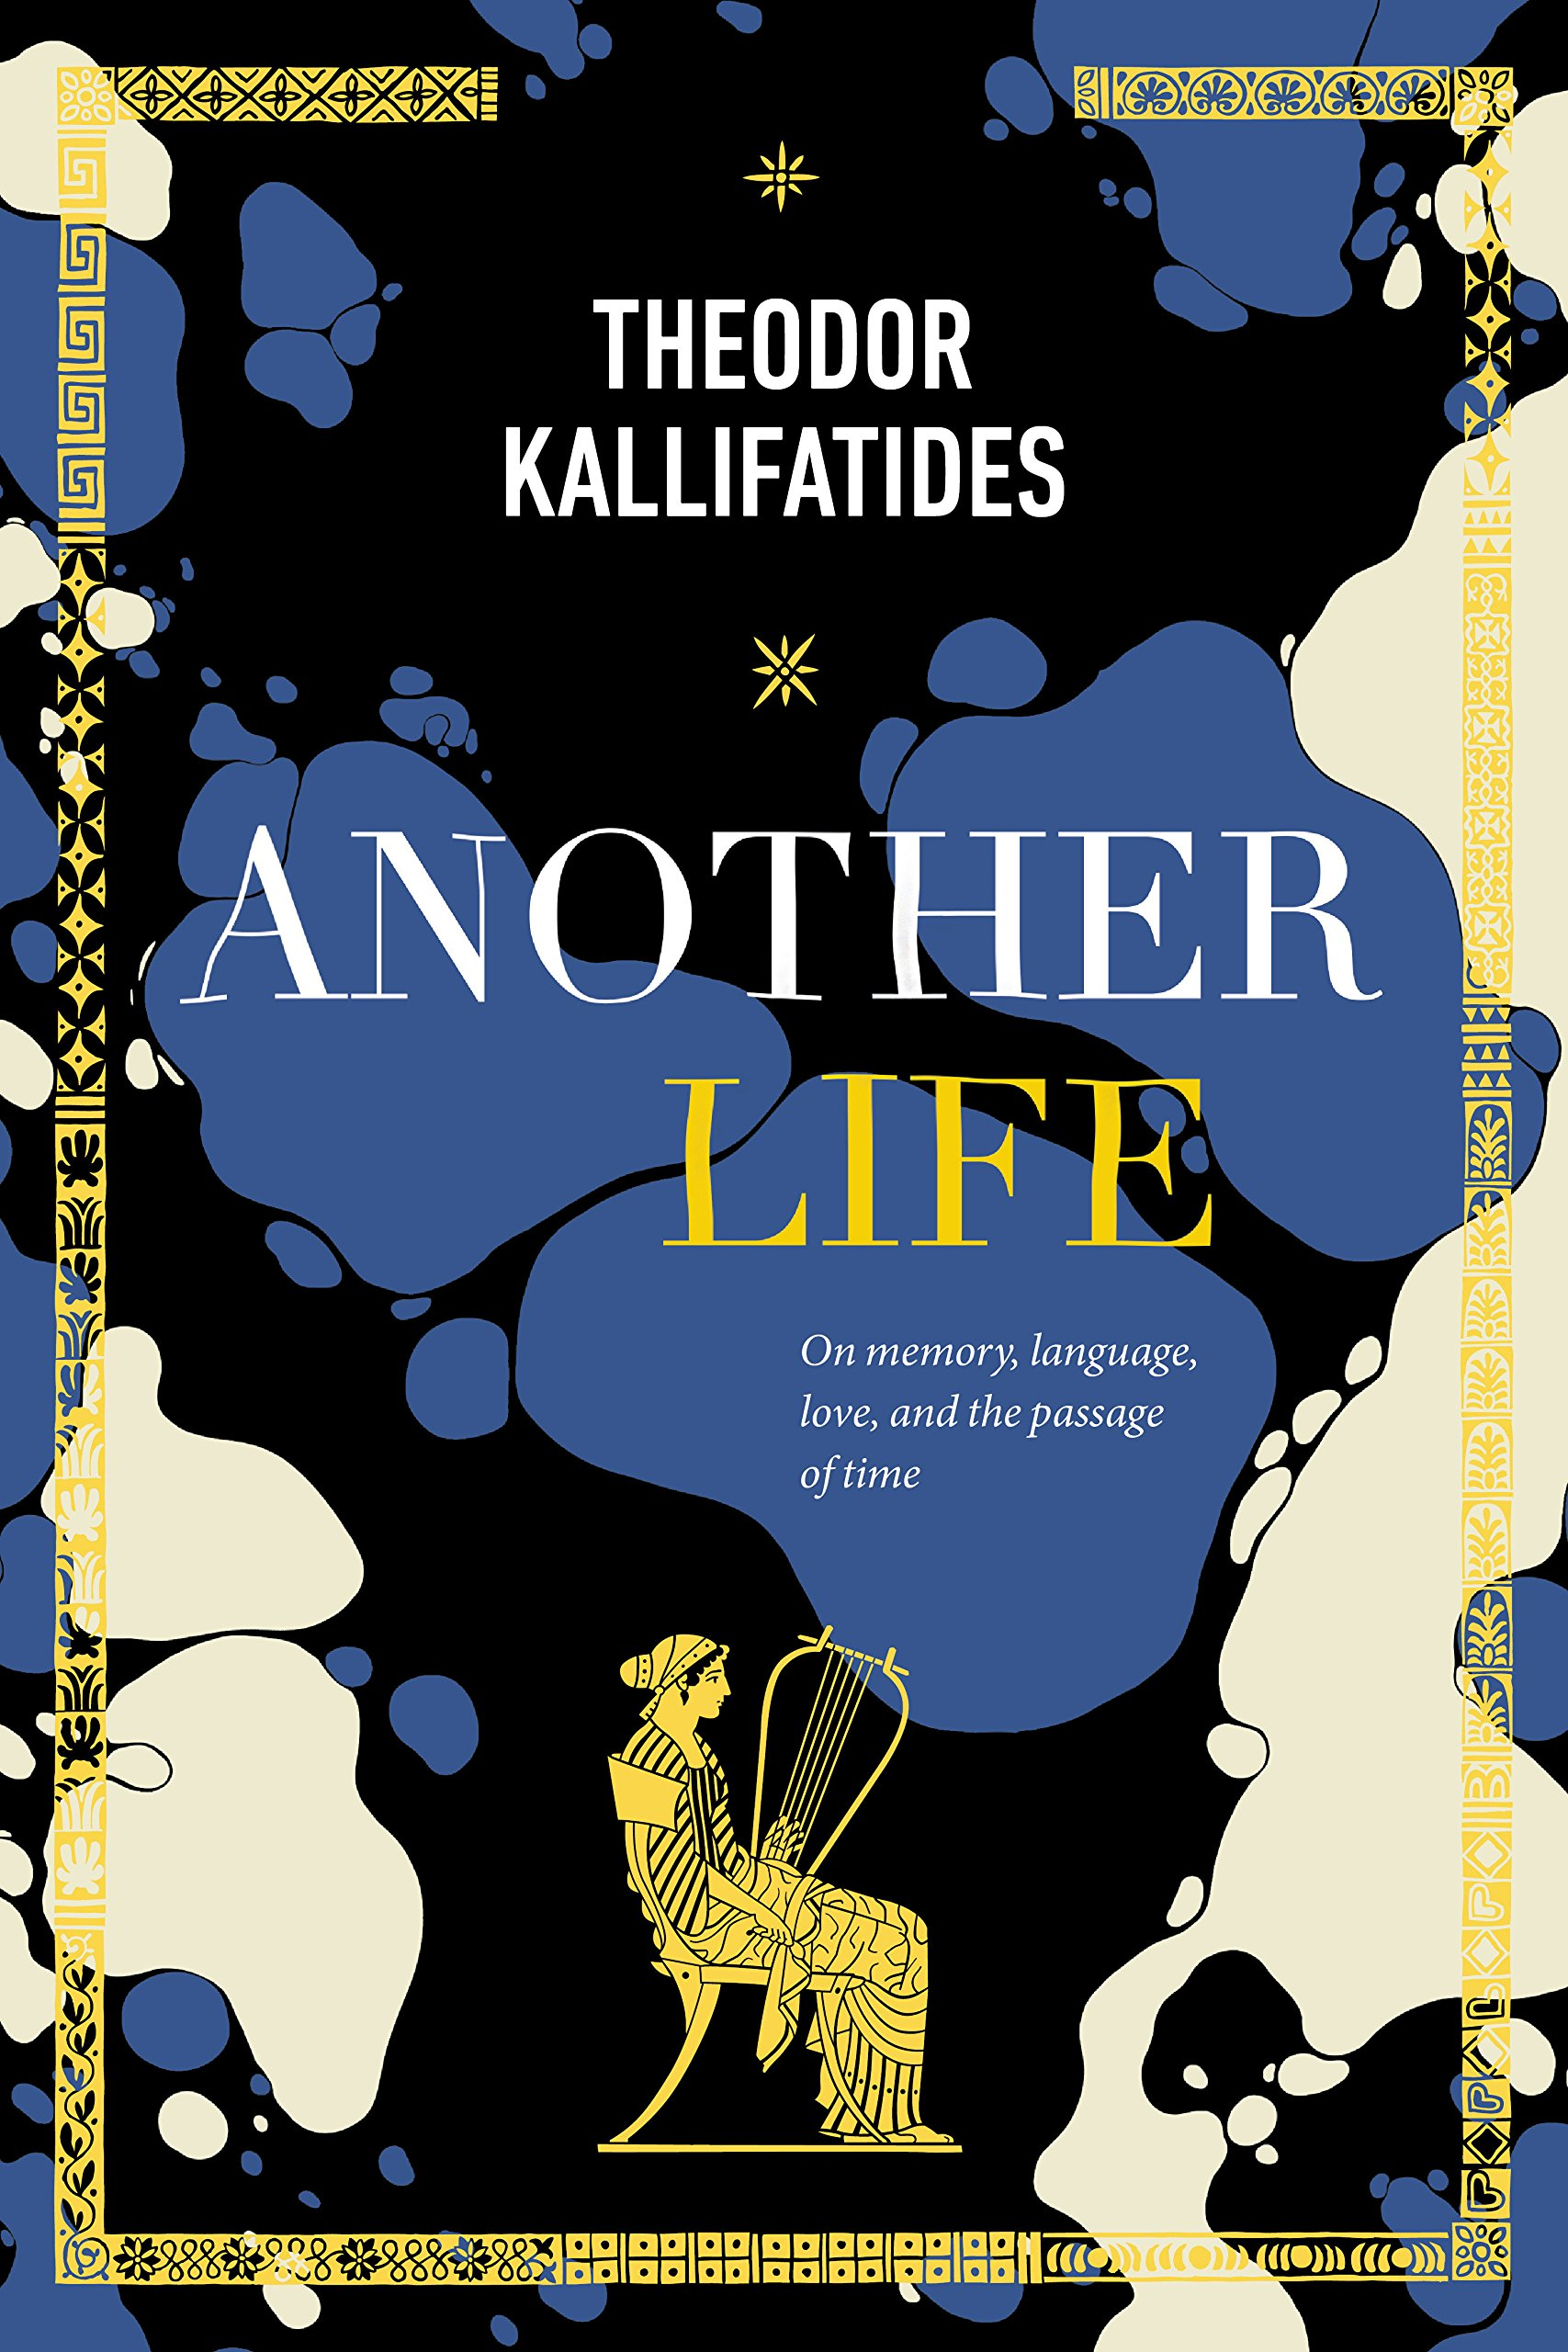 Another Life: On Memory, Language, Love, and the Passage of Time by Other Press